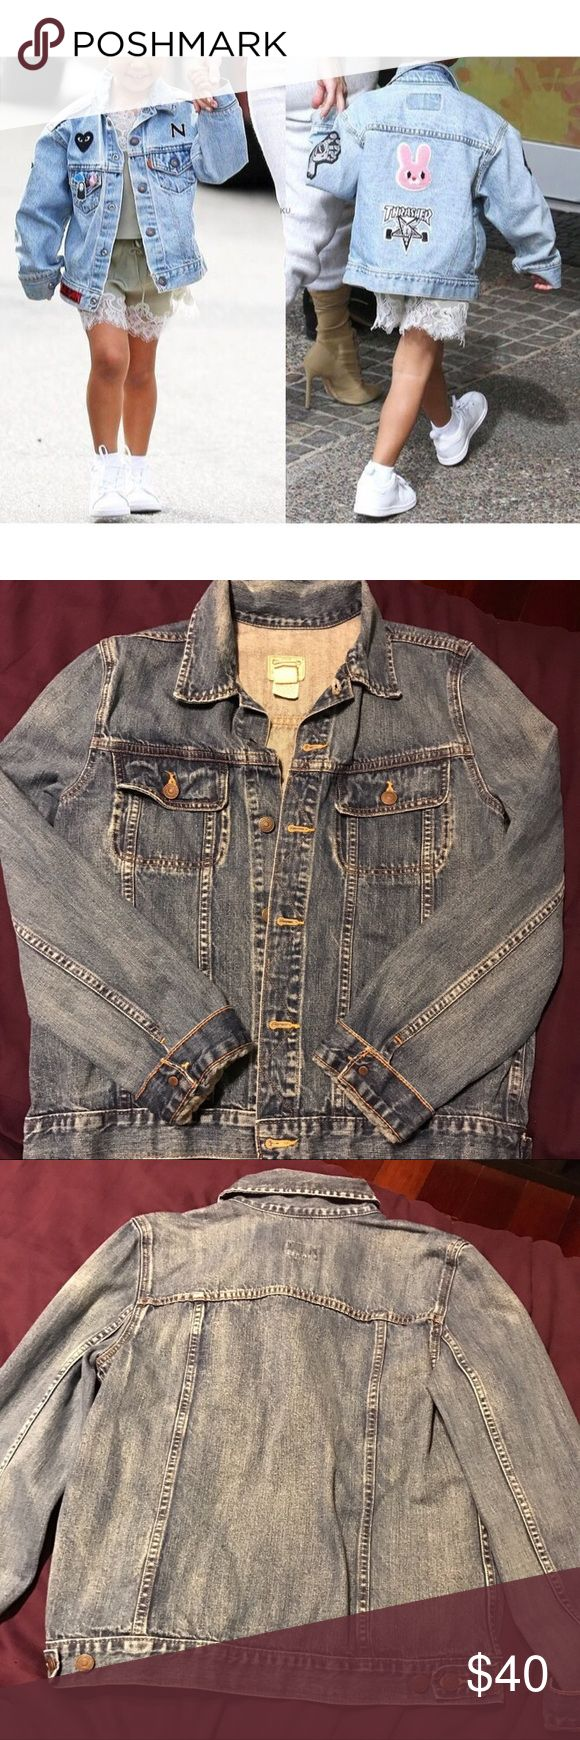 ✨Children's Jean Jacket!✨ Kid's Ralph Lauren Medium Denim Jacket! Slightly oversized, Super adorable, perfect for ANY outfit ALL YEAR ROUND! Great for both boys & girls, Jean jackets are a staple item for ANY closet bc they NEVER go out of style! *Distress it, add patches, or leave it as is! (*Cover image used as a style reference.) **NOT ZARA , used for exposure**✨BUNDLE & SAVE✨  REASONABLE OFFERS WELCOME!  ✨Comes from a smoke free environment ✨  ***TAGS: American Apparel, Topshop, Kids…